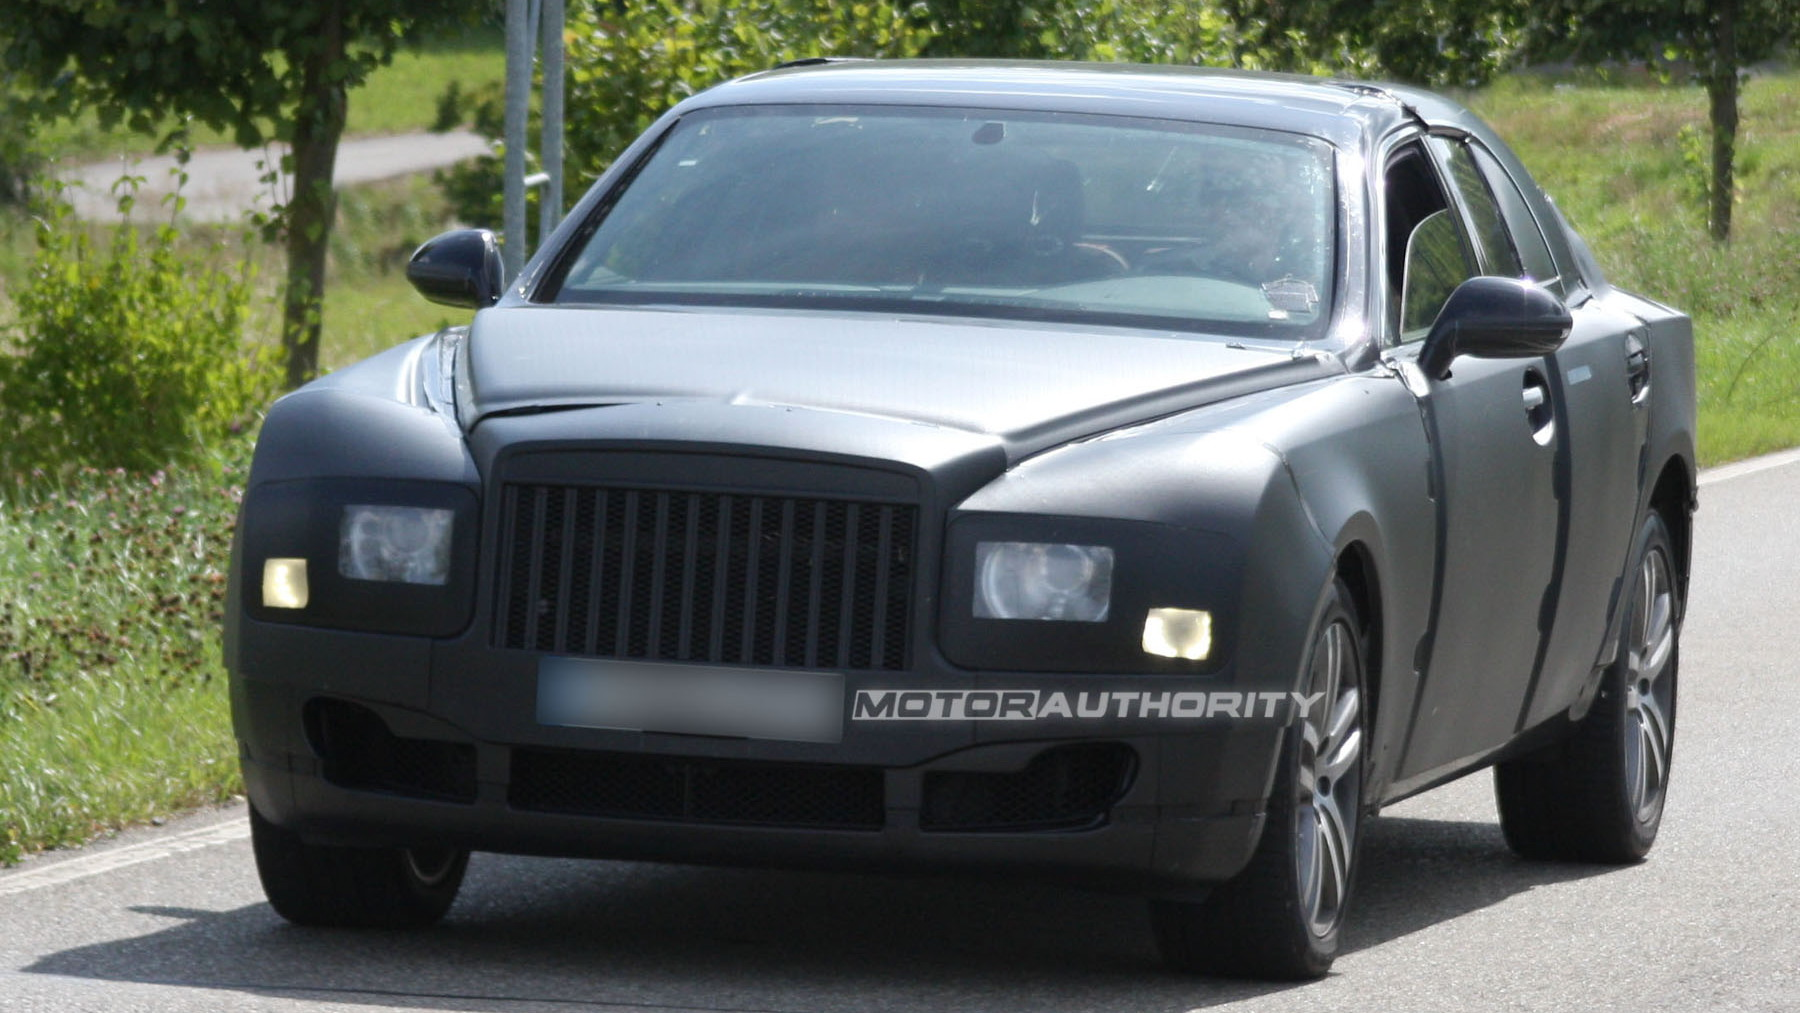 2010 grand bentley arnage replacement spy shots july 001